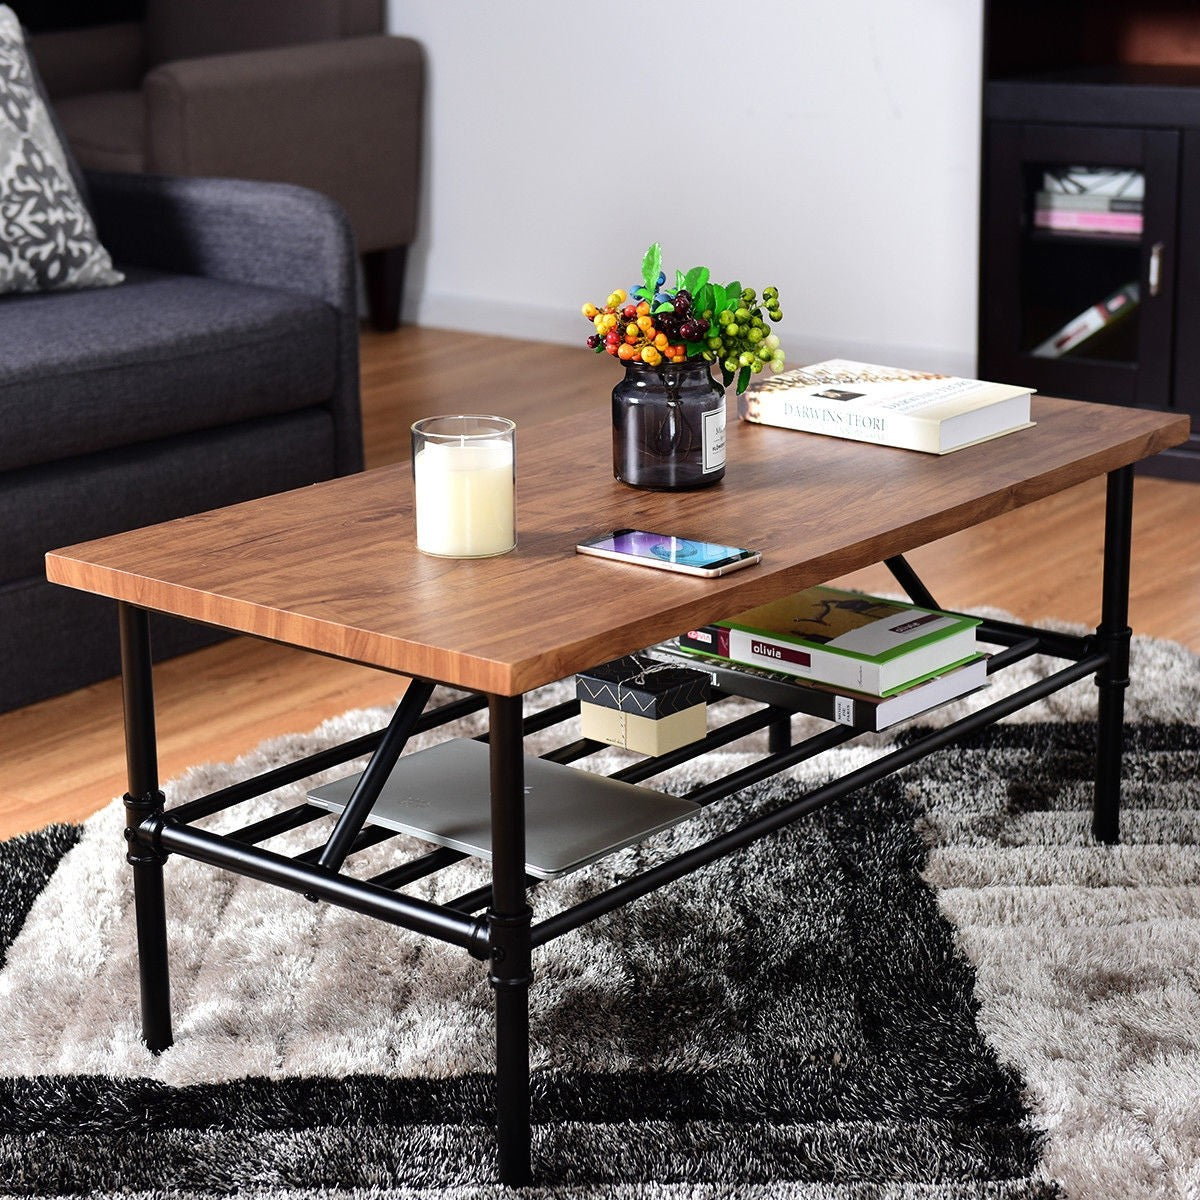 2-Tier Coffee Table